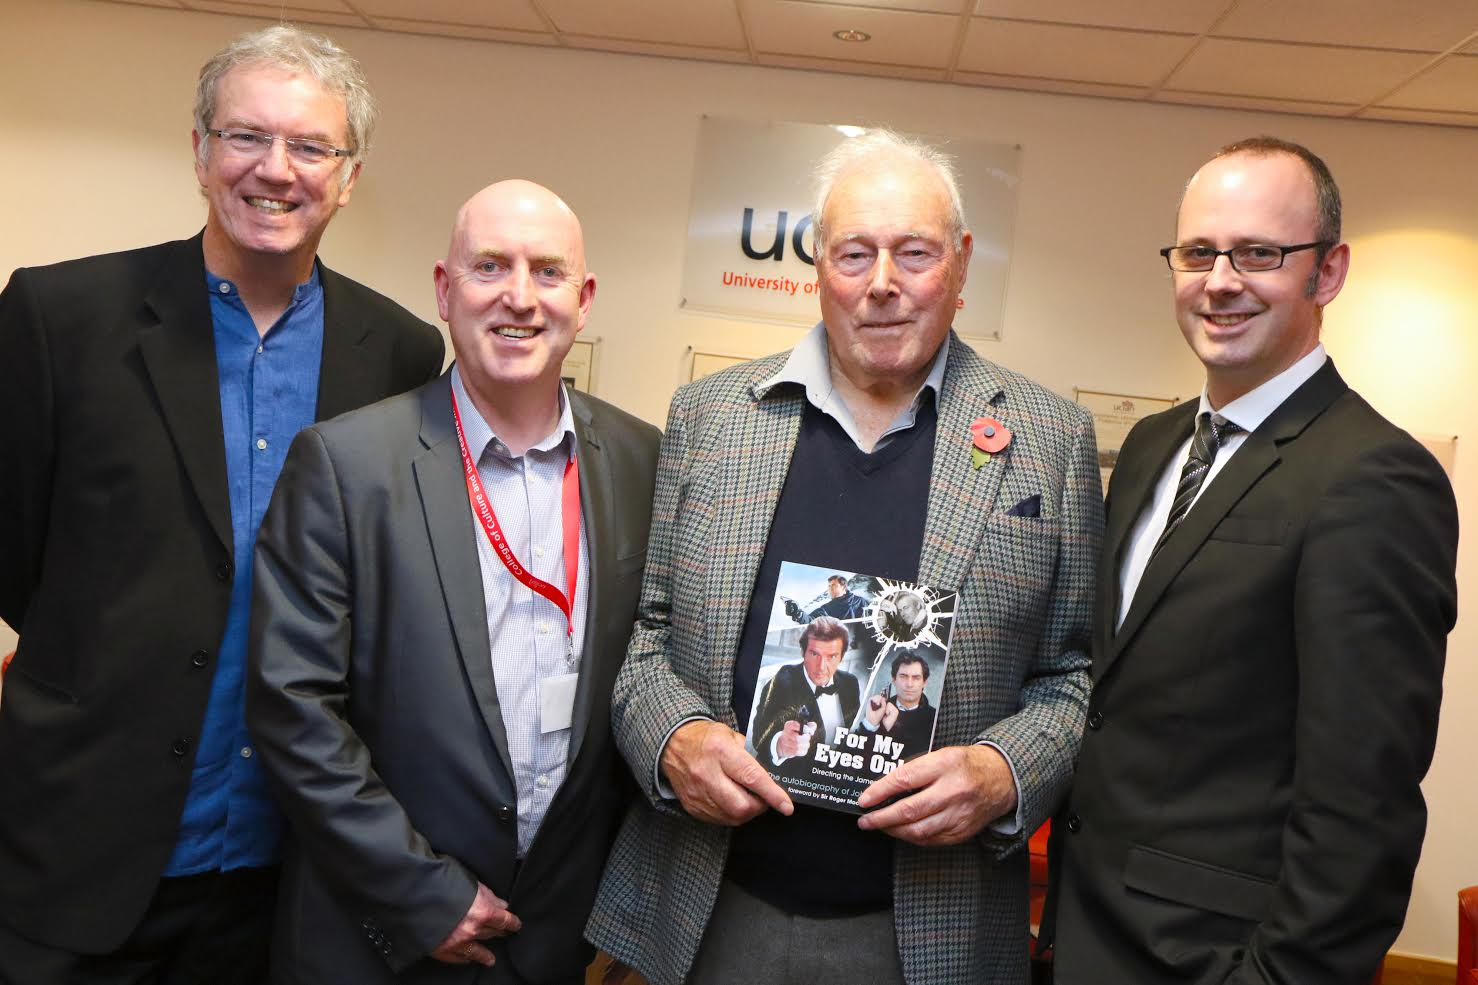 L-R UCLan screenwriting course leader Bill McCoid, Great Northern Creative Festival co-ordinator Alan Keegan, film director John Glen and Executive Dean of the College of Culture and the Creative Industries Dr Andrew Ireland.